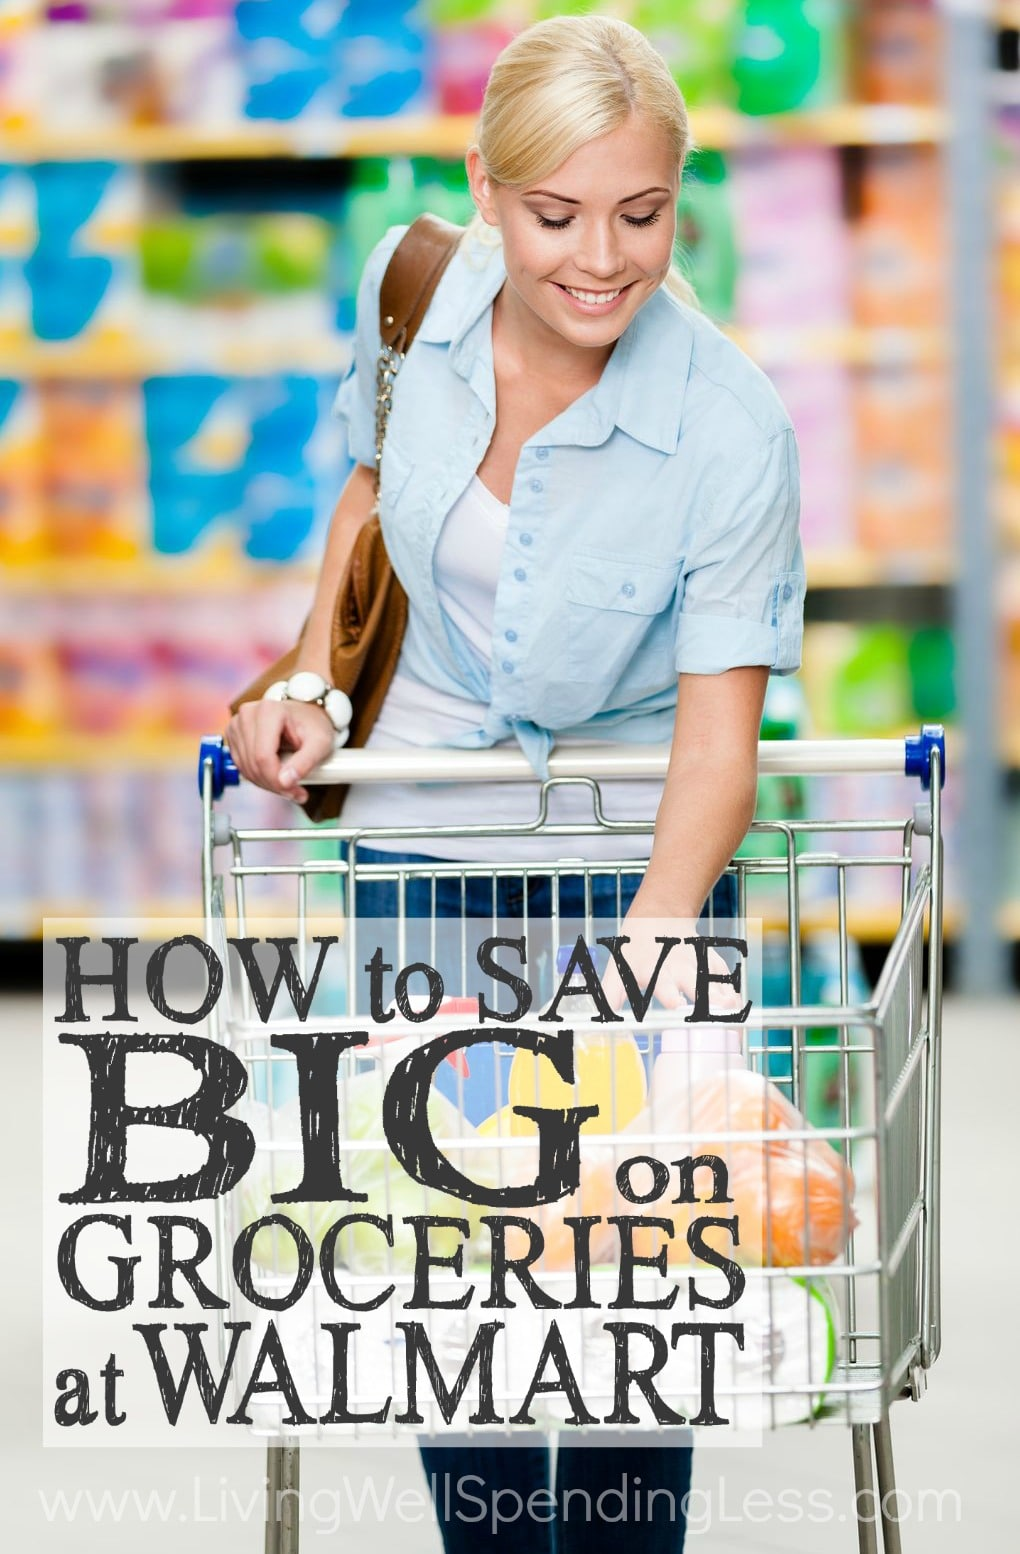 How to spend less on groceries without coupons